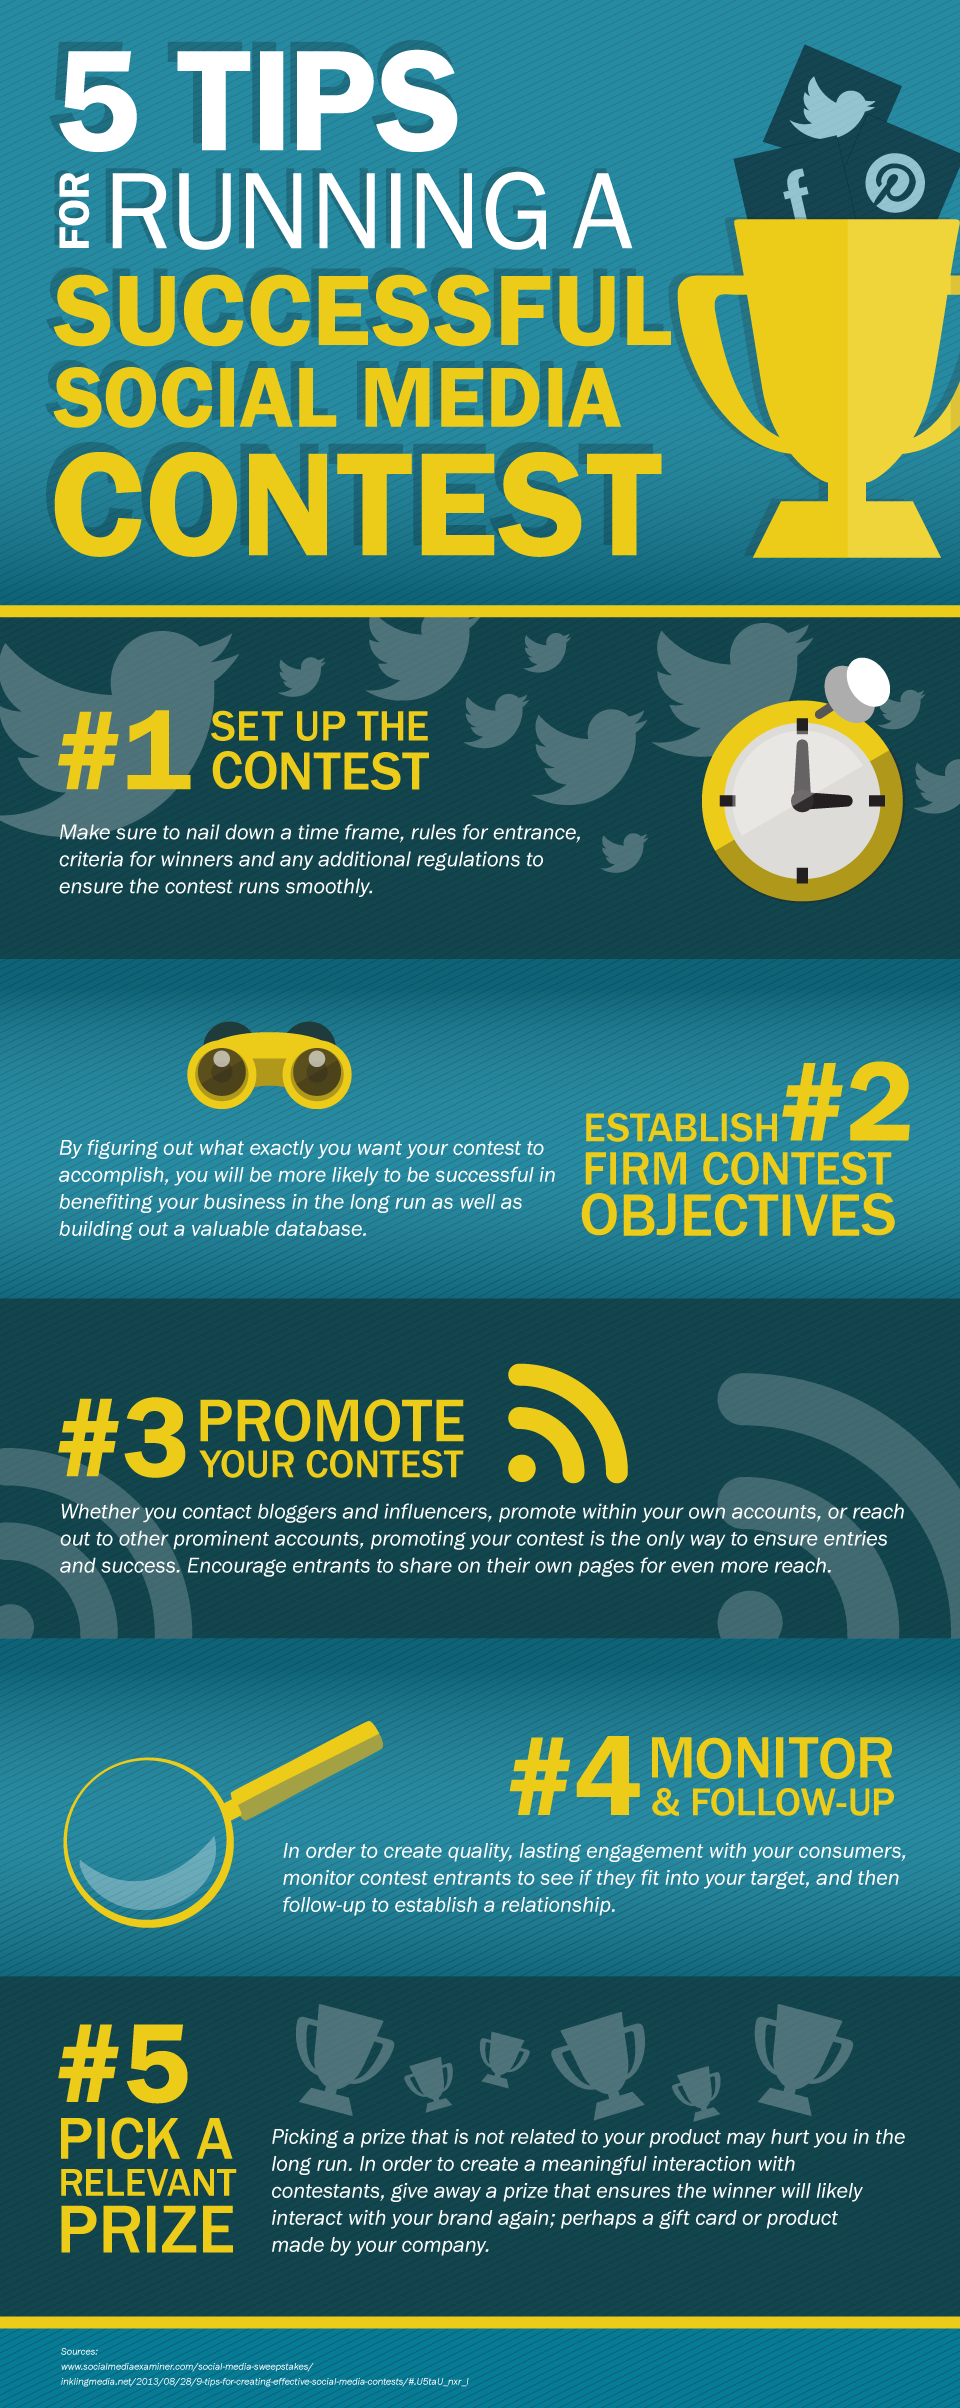 5 tips for running a successful social media contest.72dpi 5 Tips For Running A SM Contest